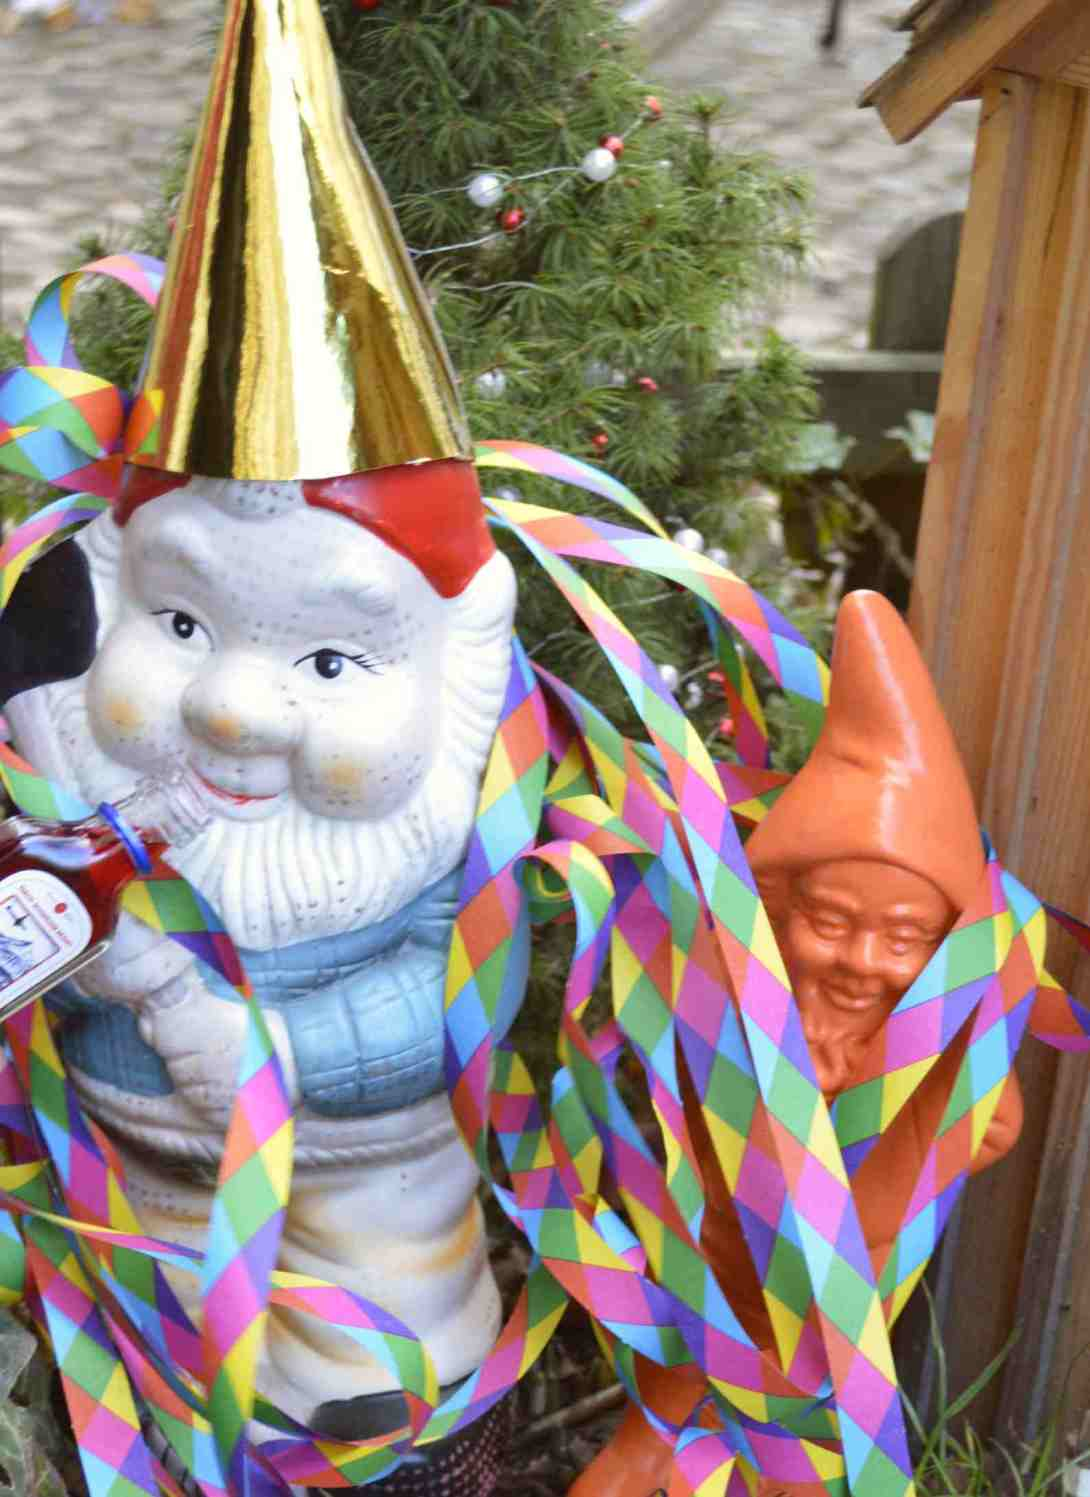 Happy New Year with the gnomes from berlin Heinrich der Gartenzwerrg Paul Joost be kitschig blog